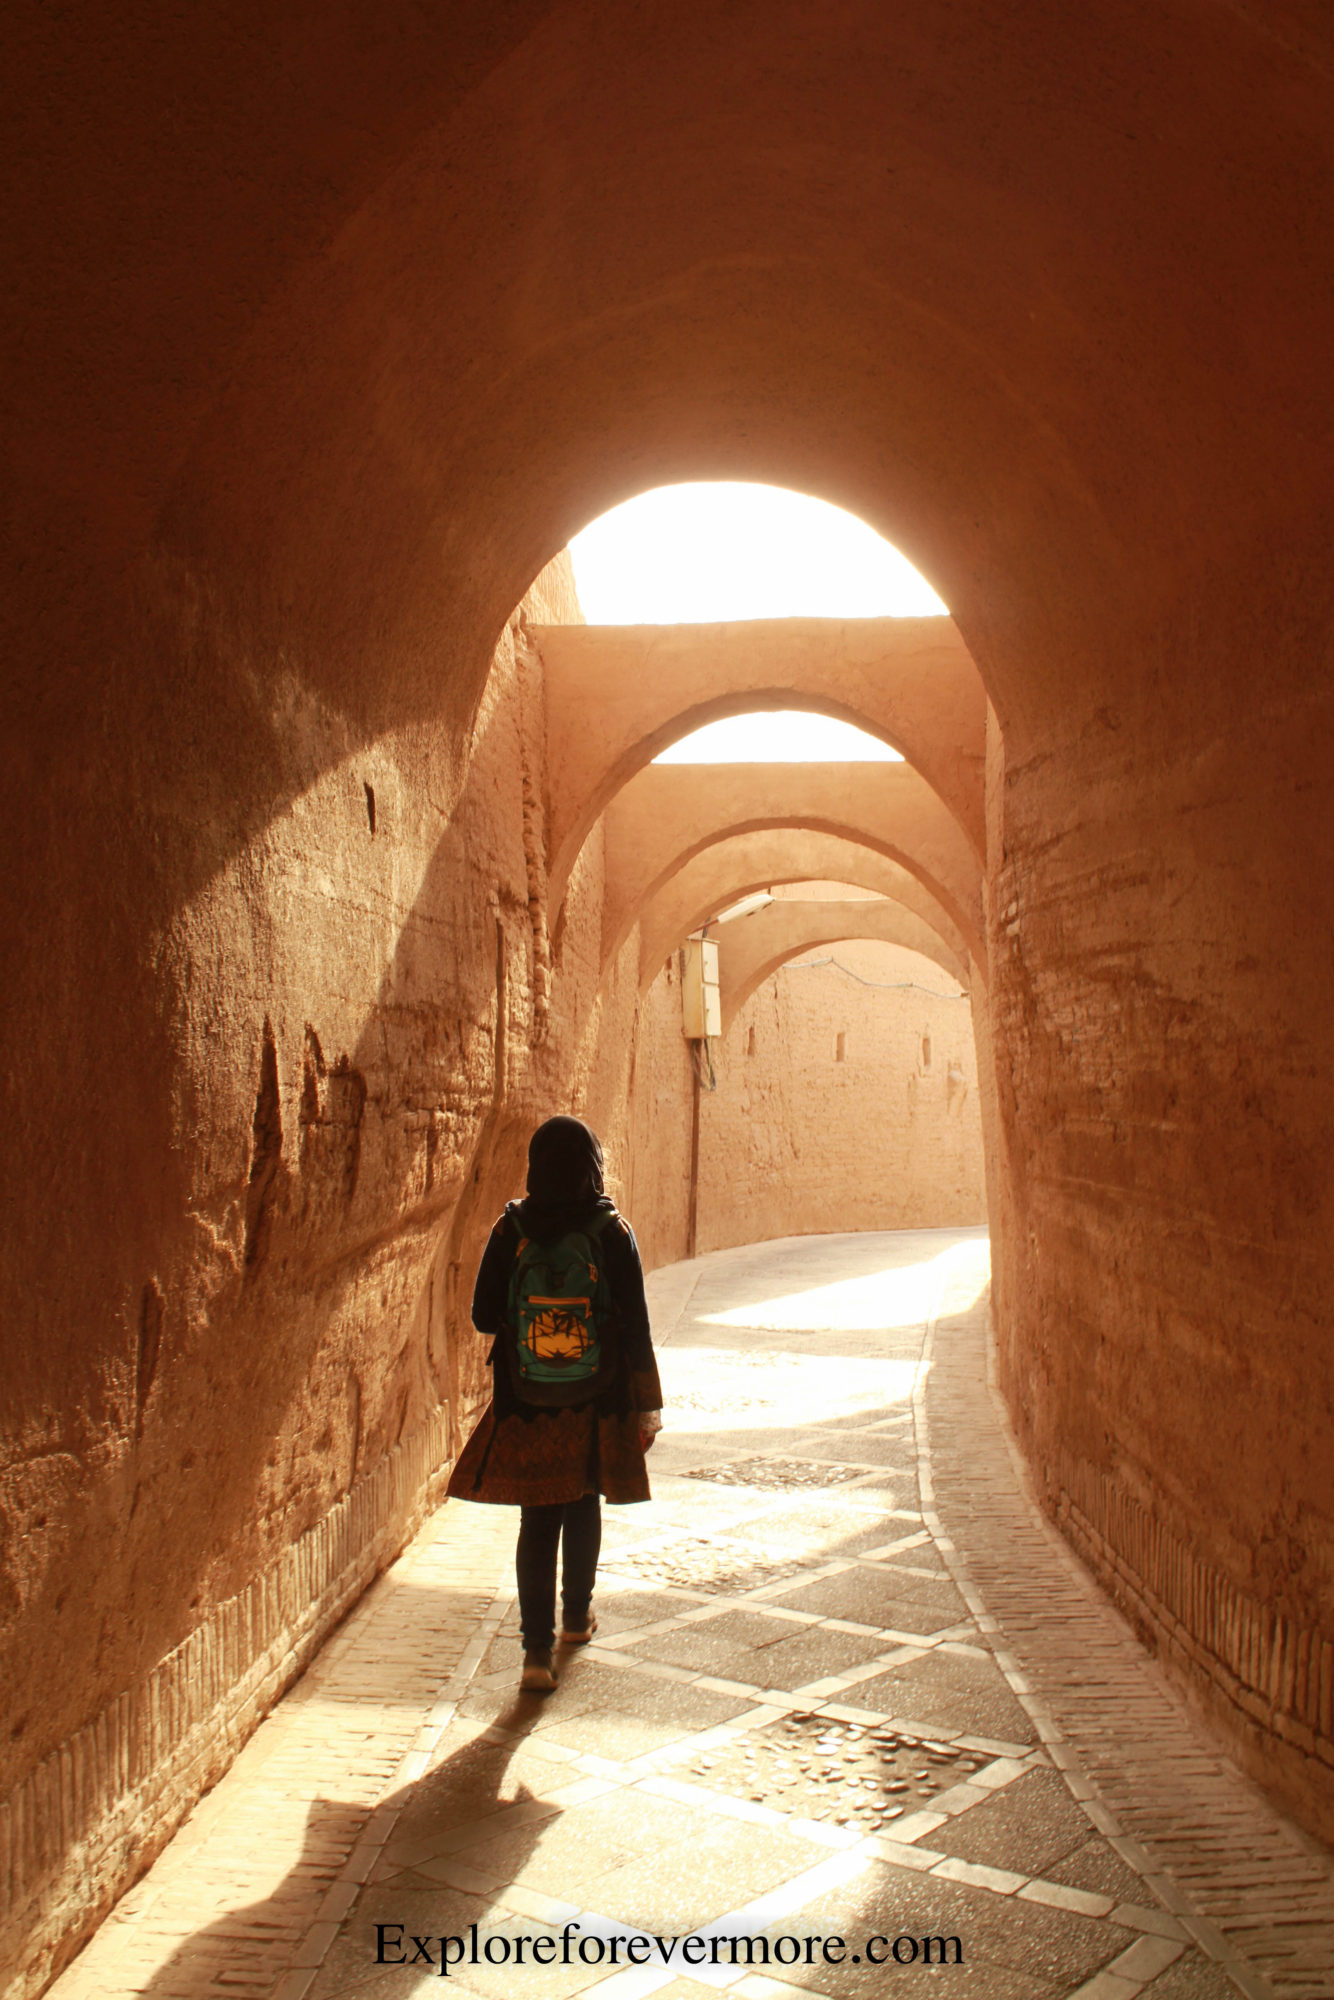 Wandering through the city of Yazd